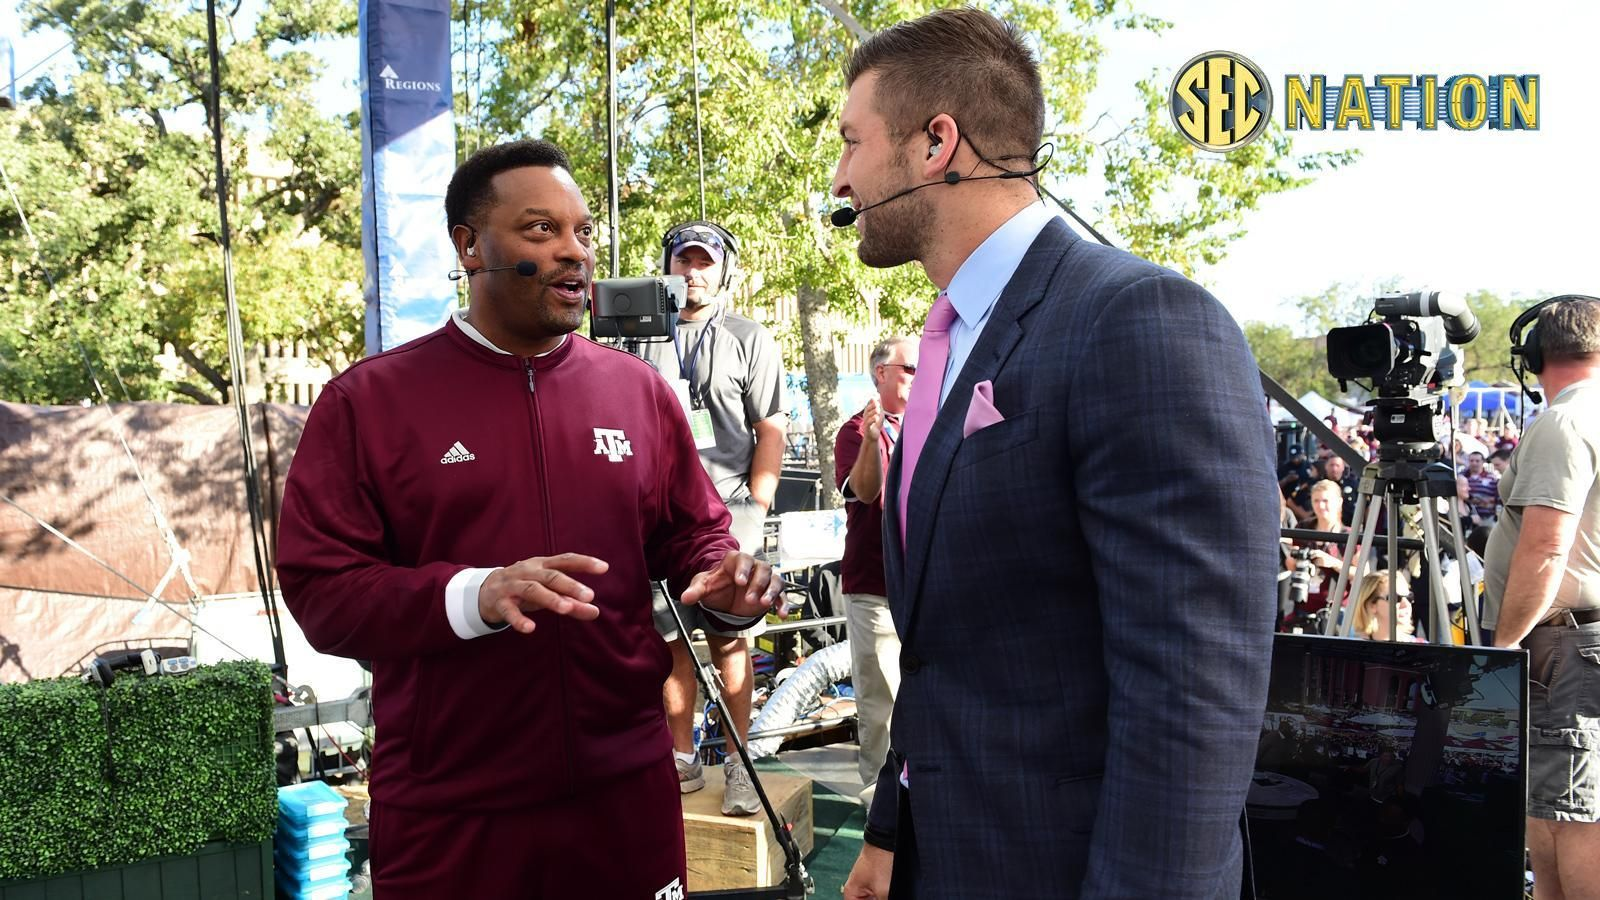 Sumlin shares what fires up the Aggies